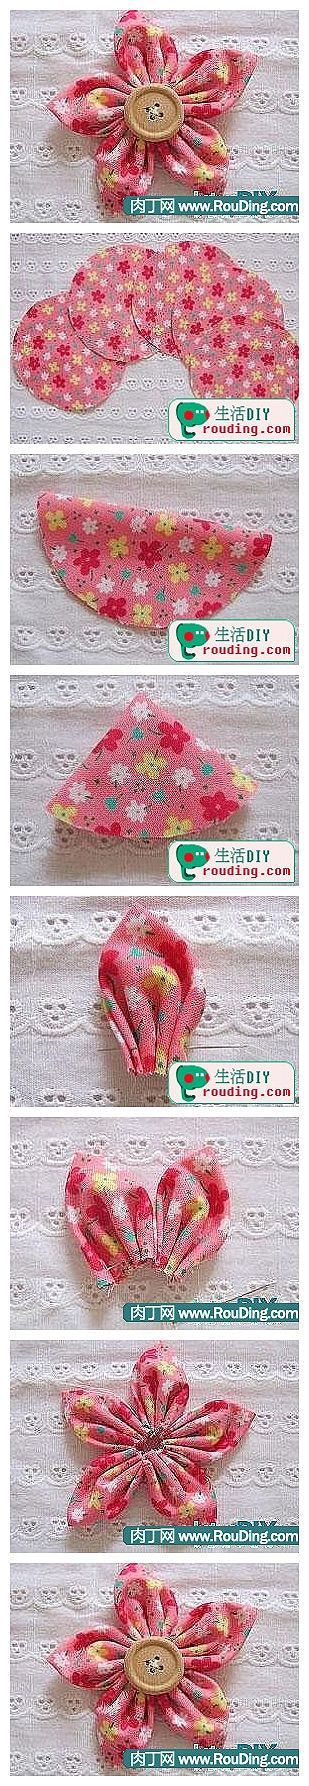 fabric flower tutorial. A great beginner hand sewing project, stick this on a shirt and you have yourself a evening blouse!